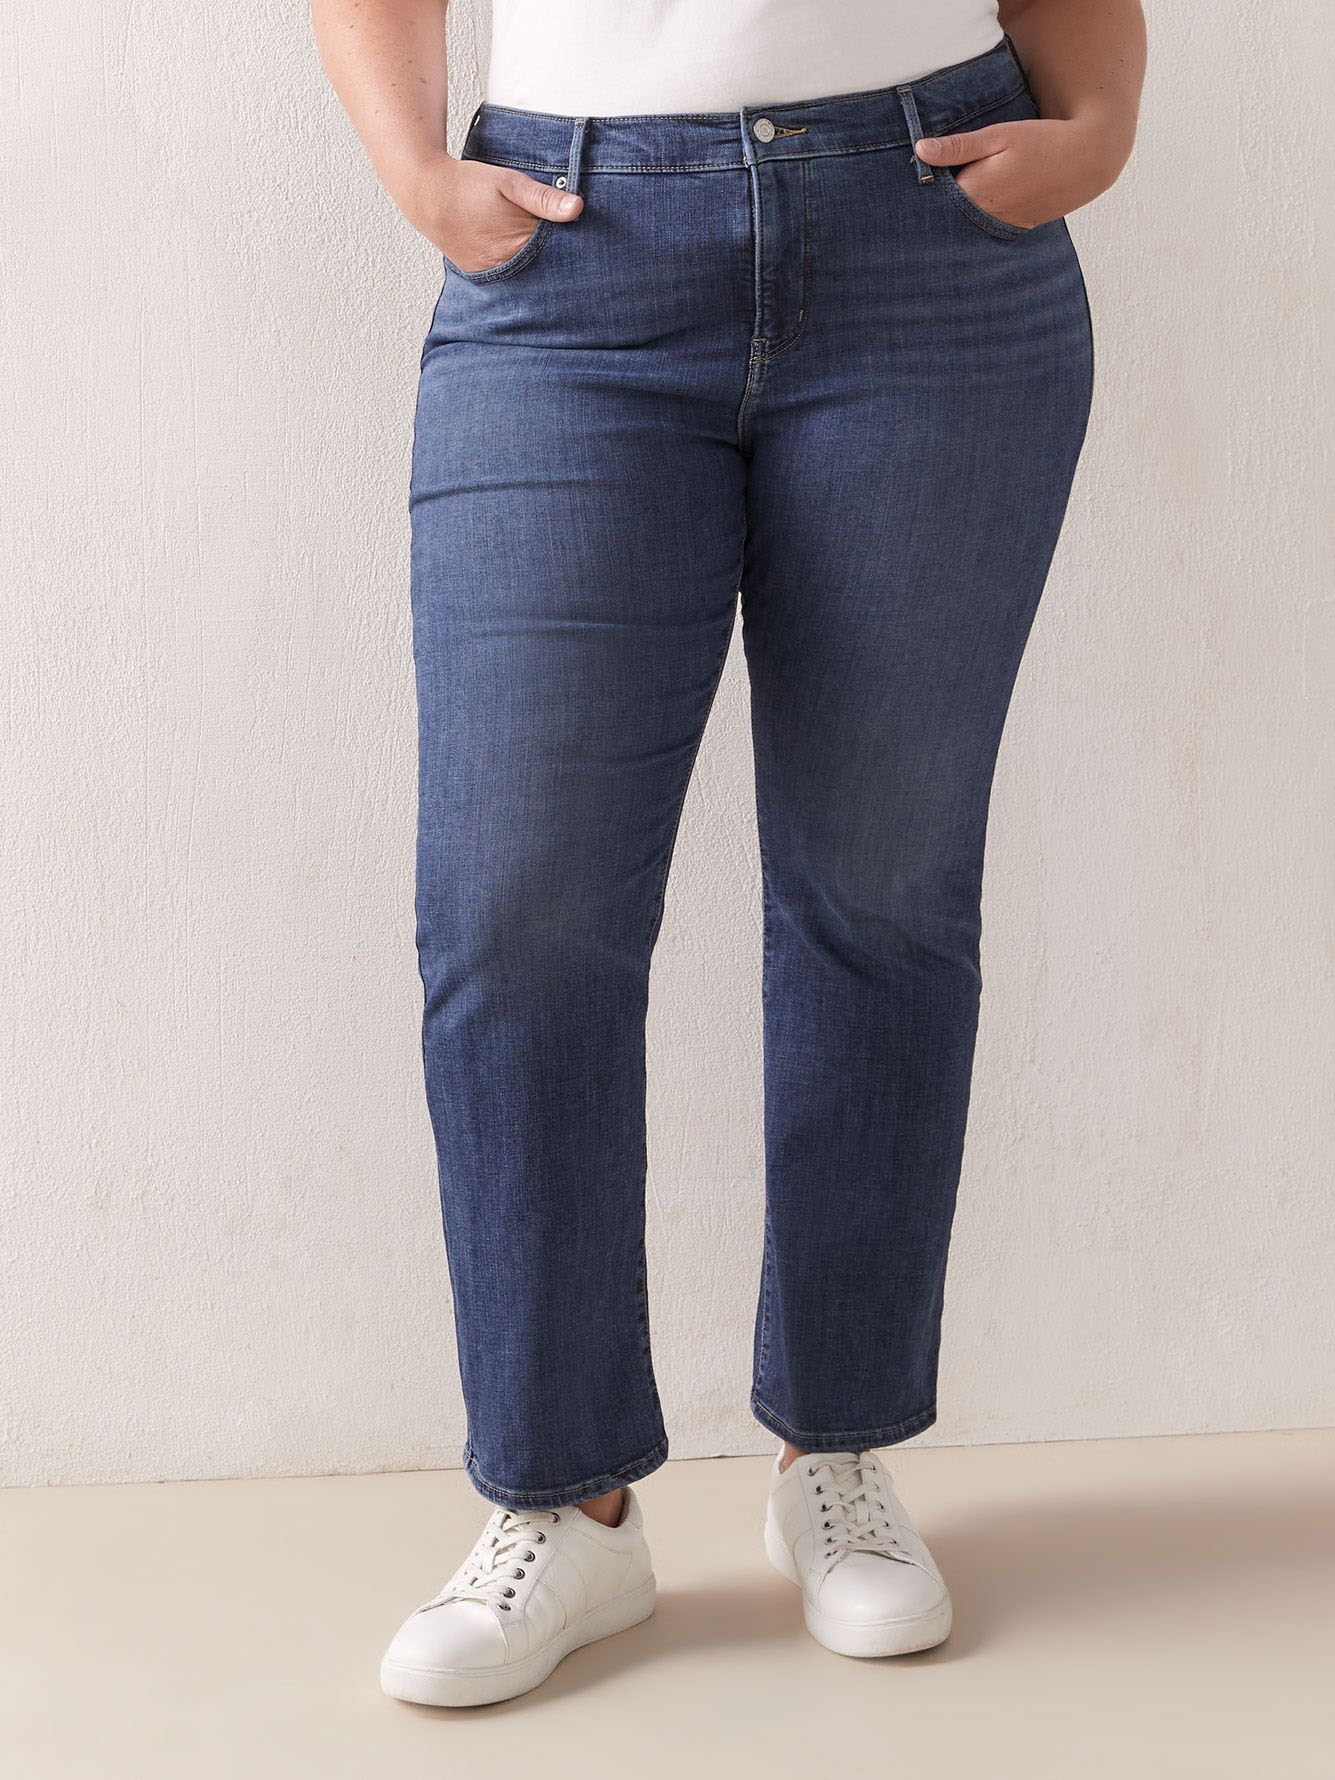 Stretchy 315 Shaping Bootcut Jean - Levi's Premium